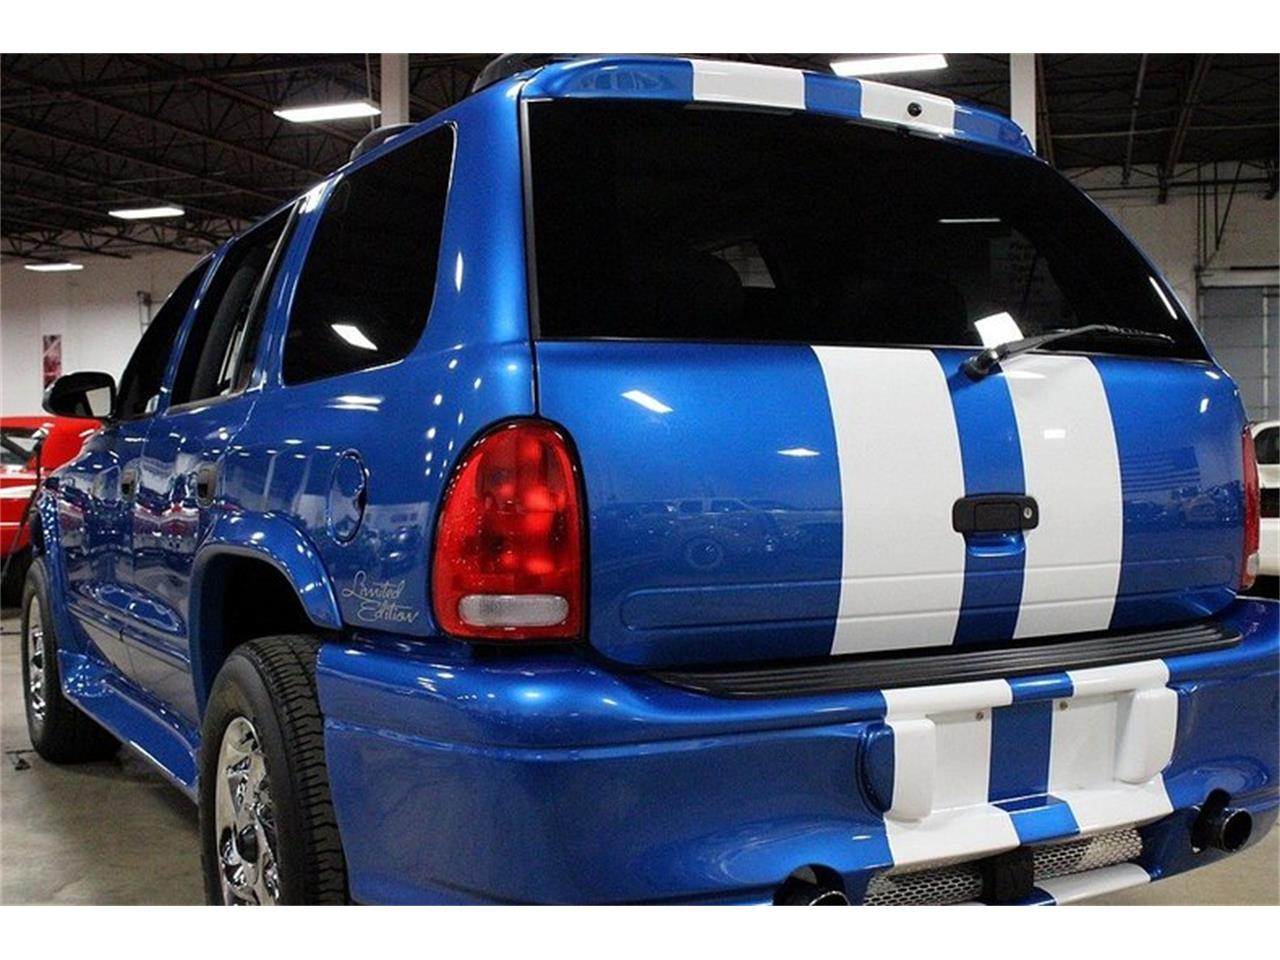 Large Picture of '99 Dodge Durango Shelby SP-360 located in Kentwood Michigan Offered by GR Auto Gallery - MB1Y